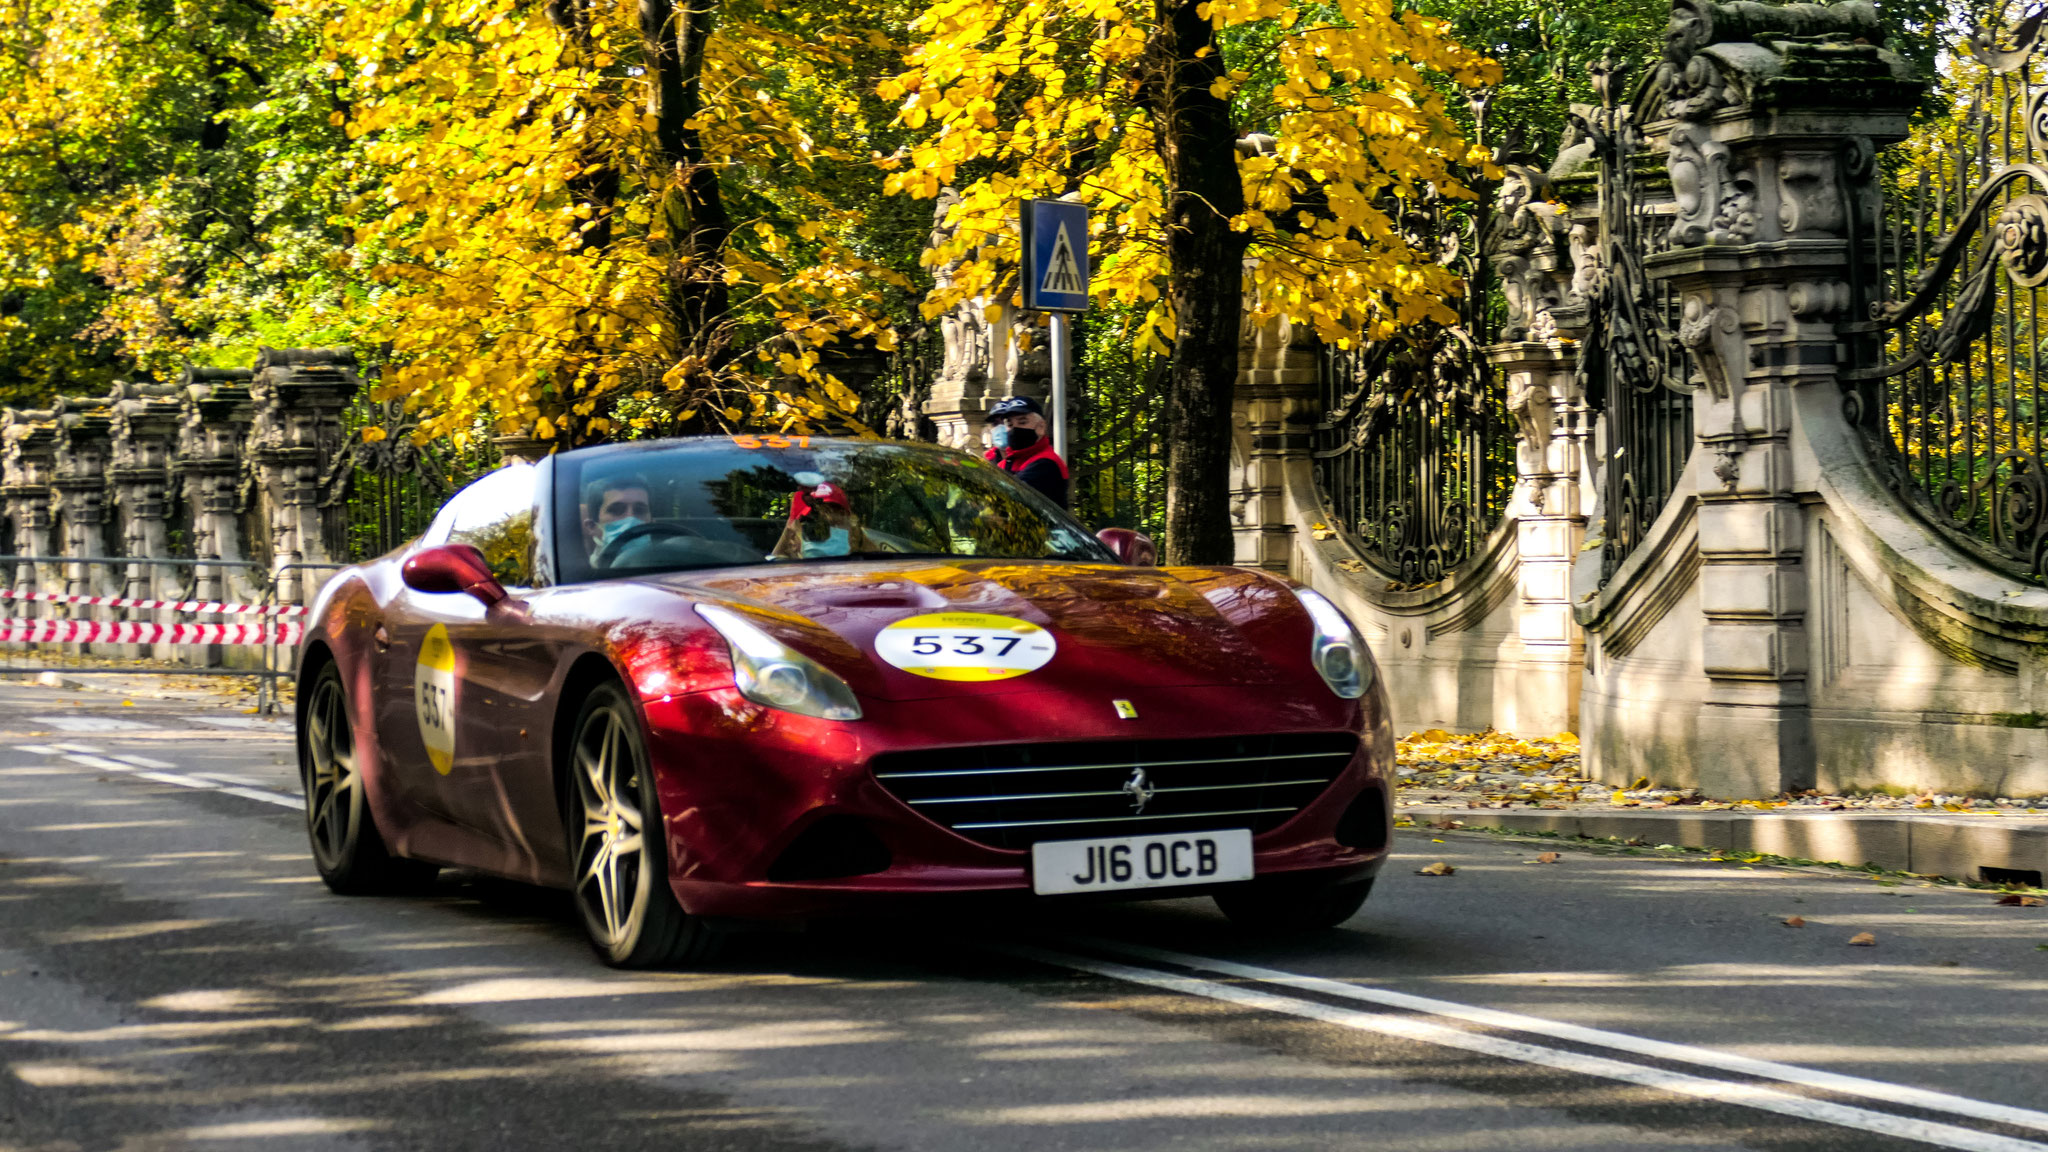 Ferrari California T - J16-OCB (GB)